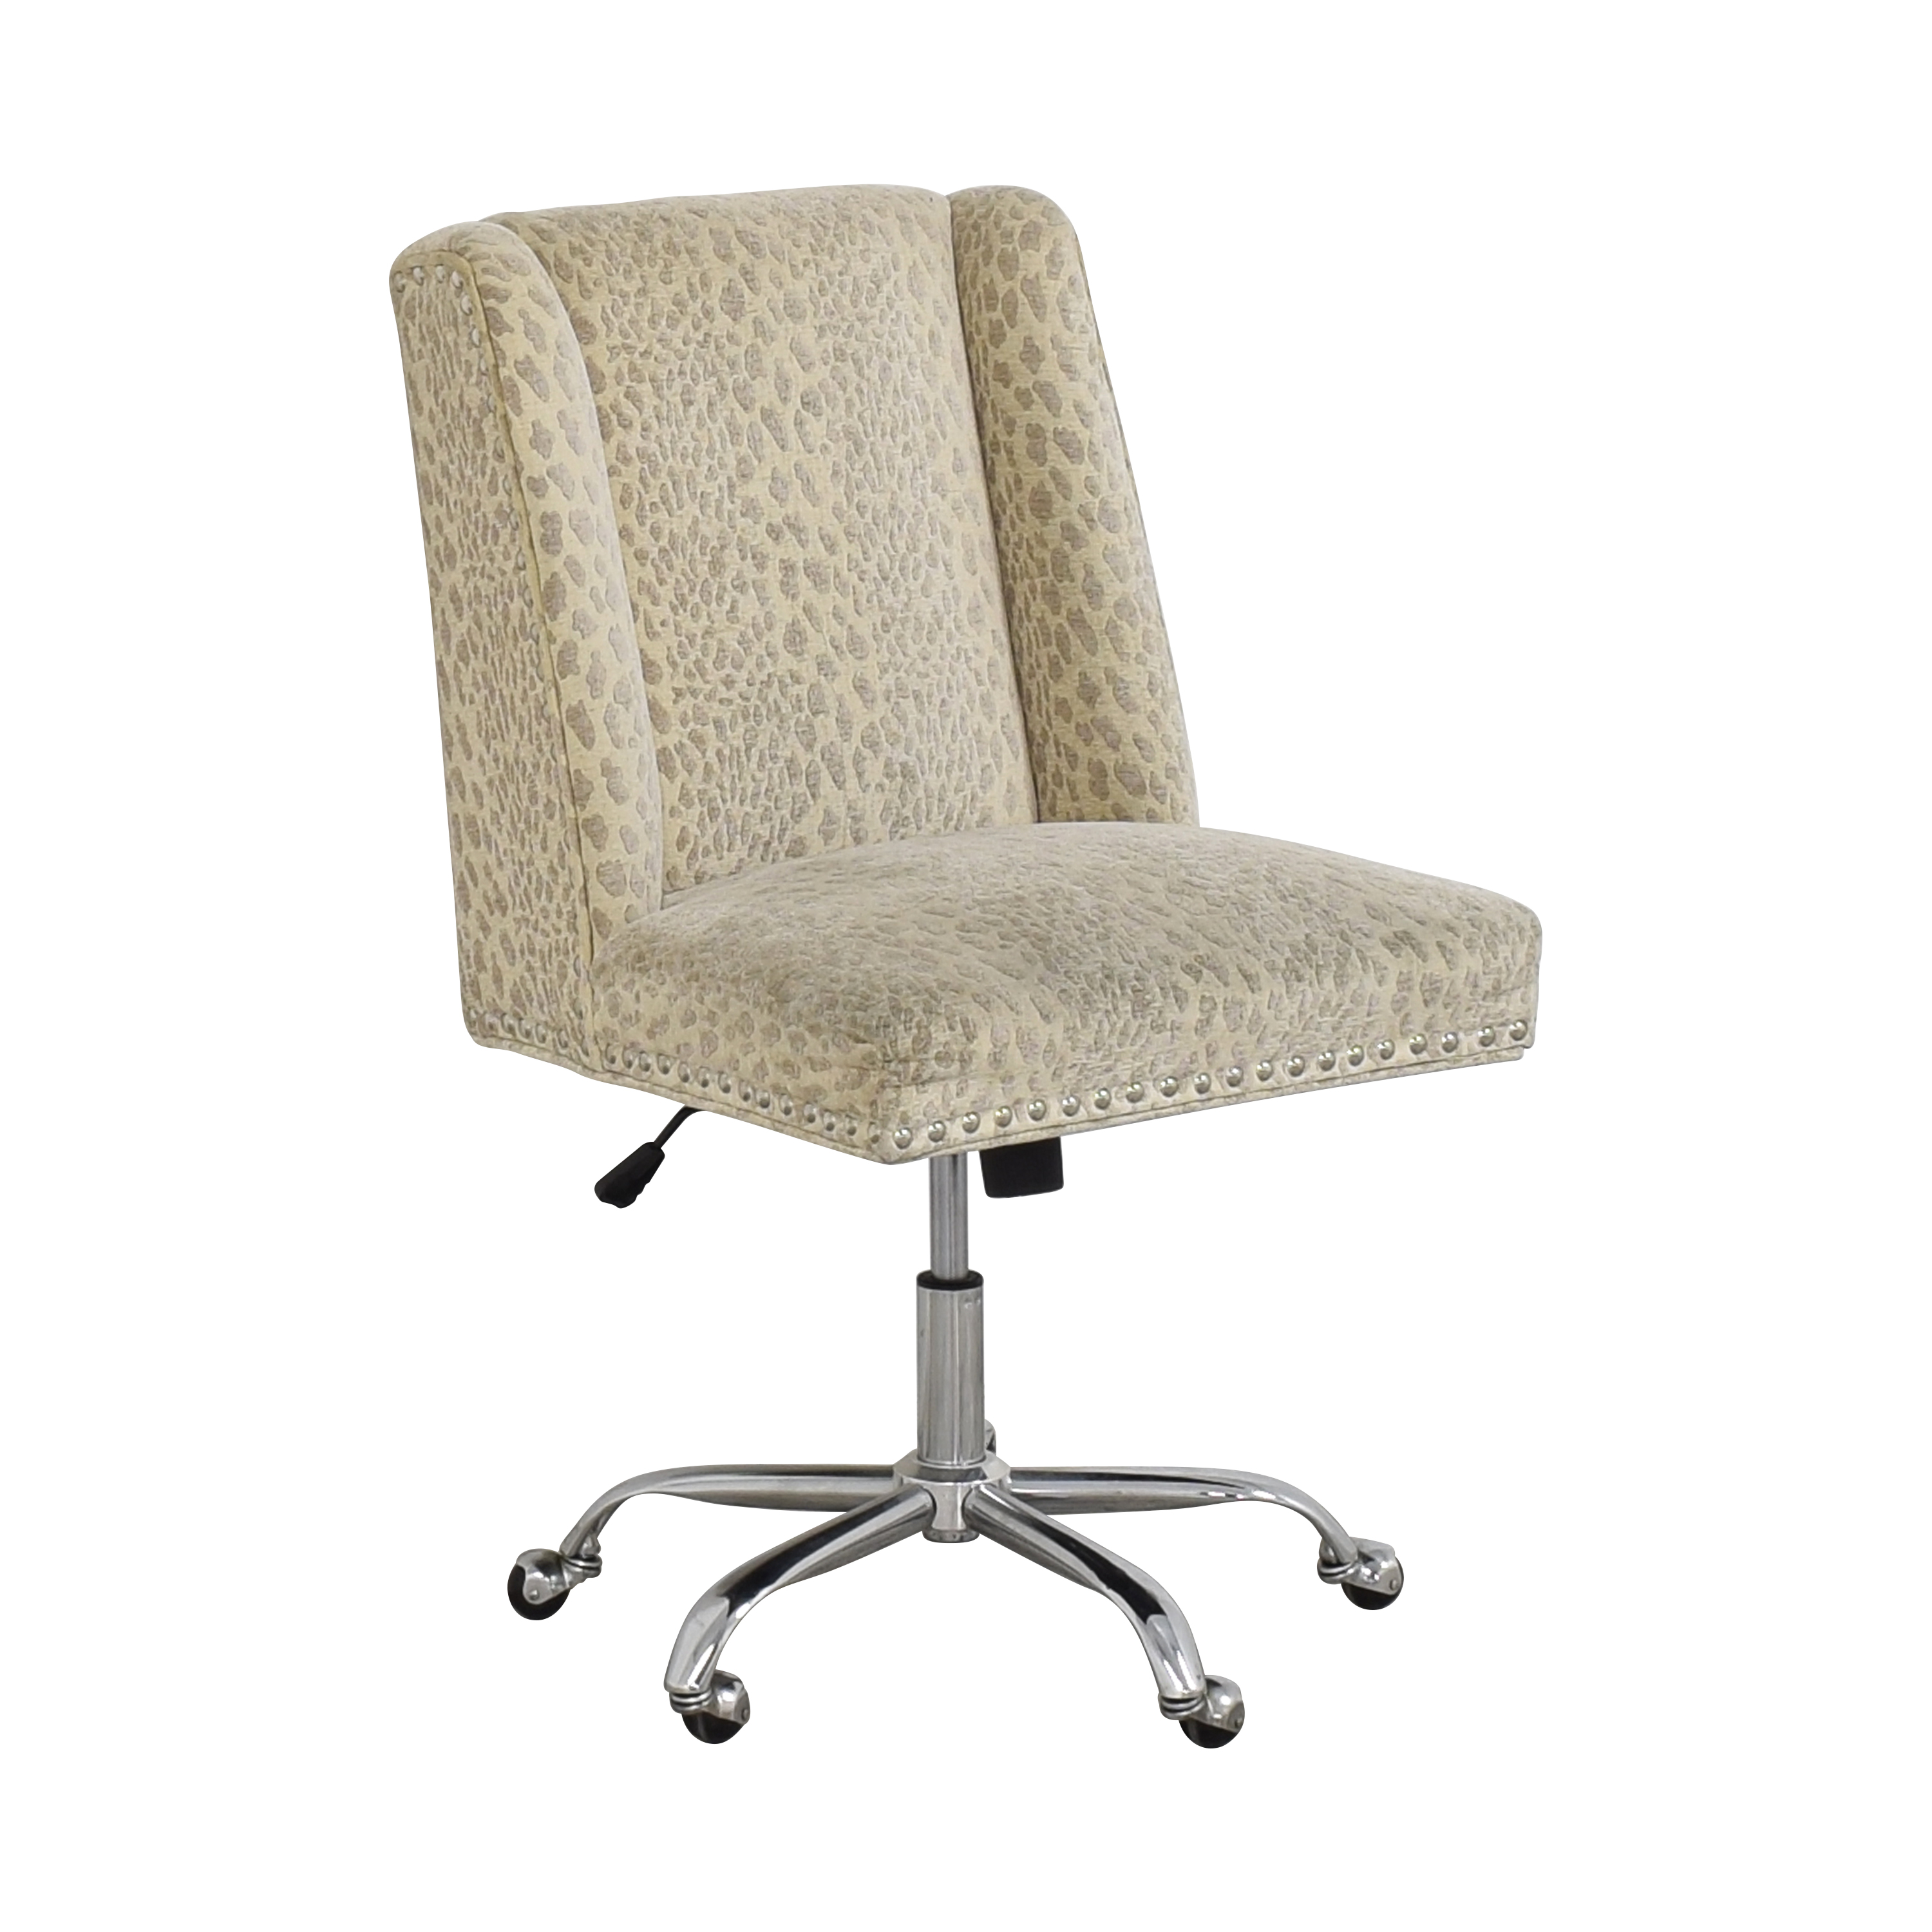 Fabric Desk Office Chair